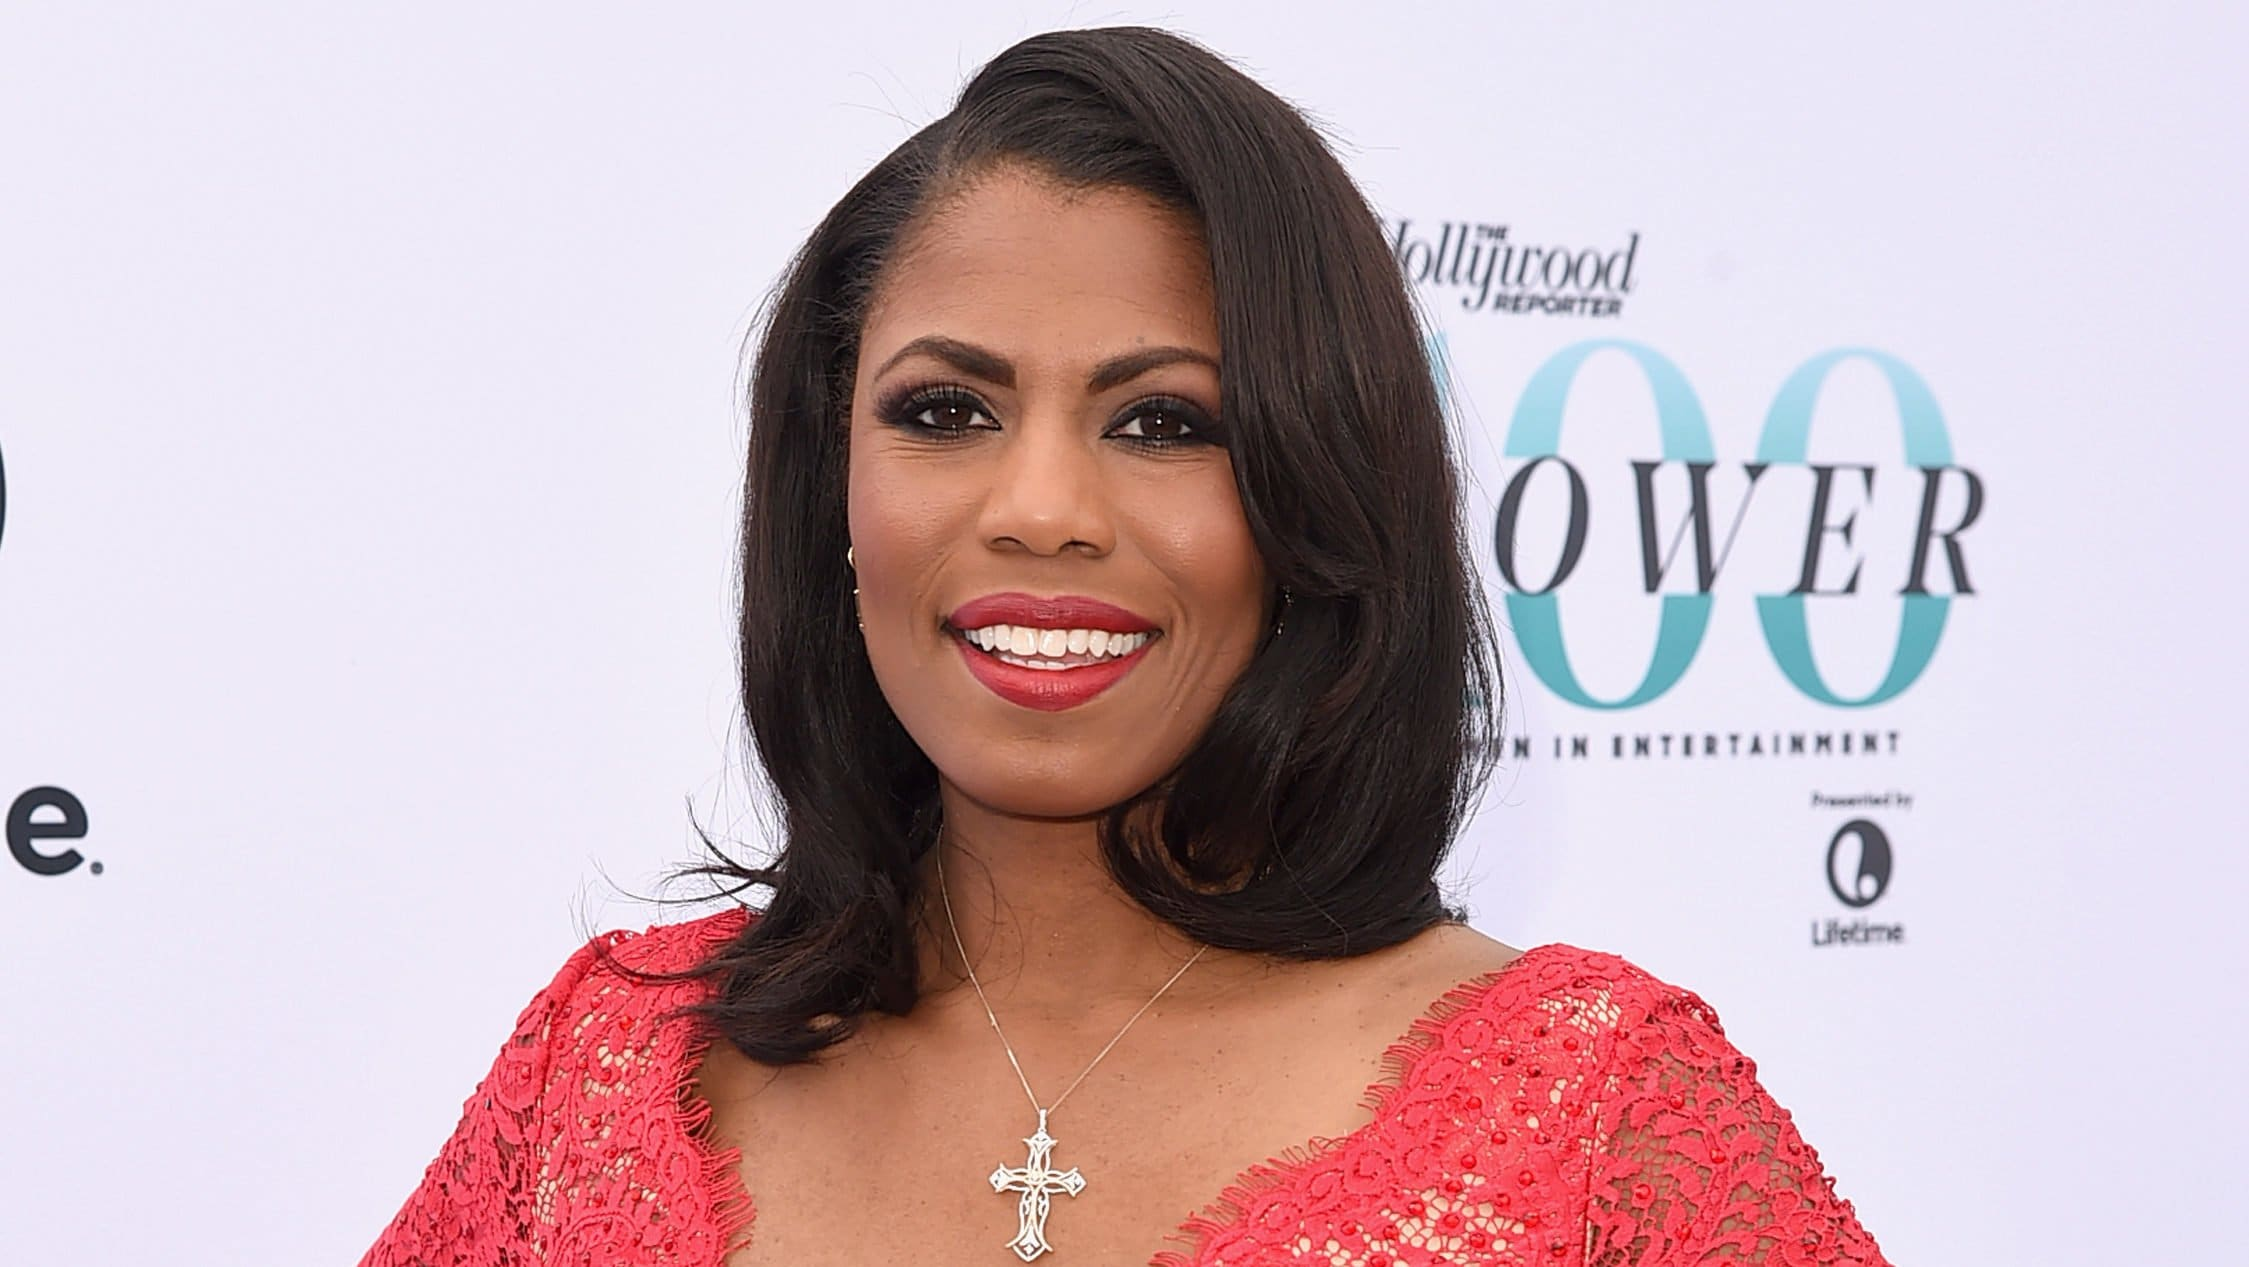 Fotos Omarosa Manigault naked (79 photo), Sexy, Fappening, Boobs, butt 2020